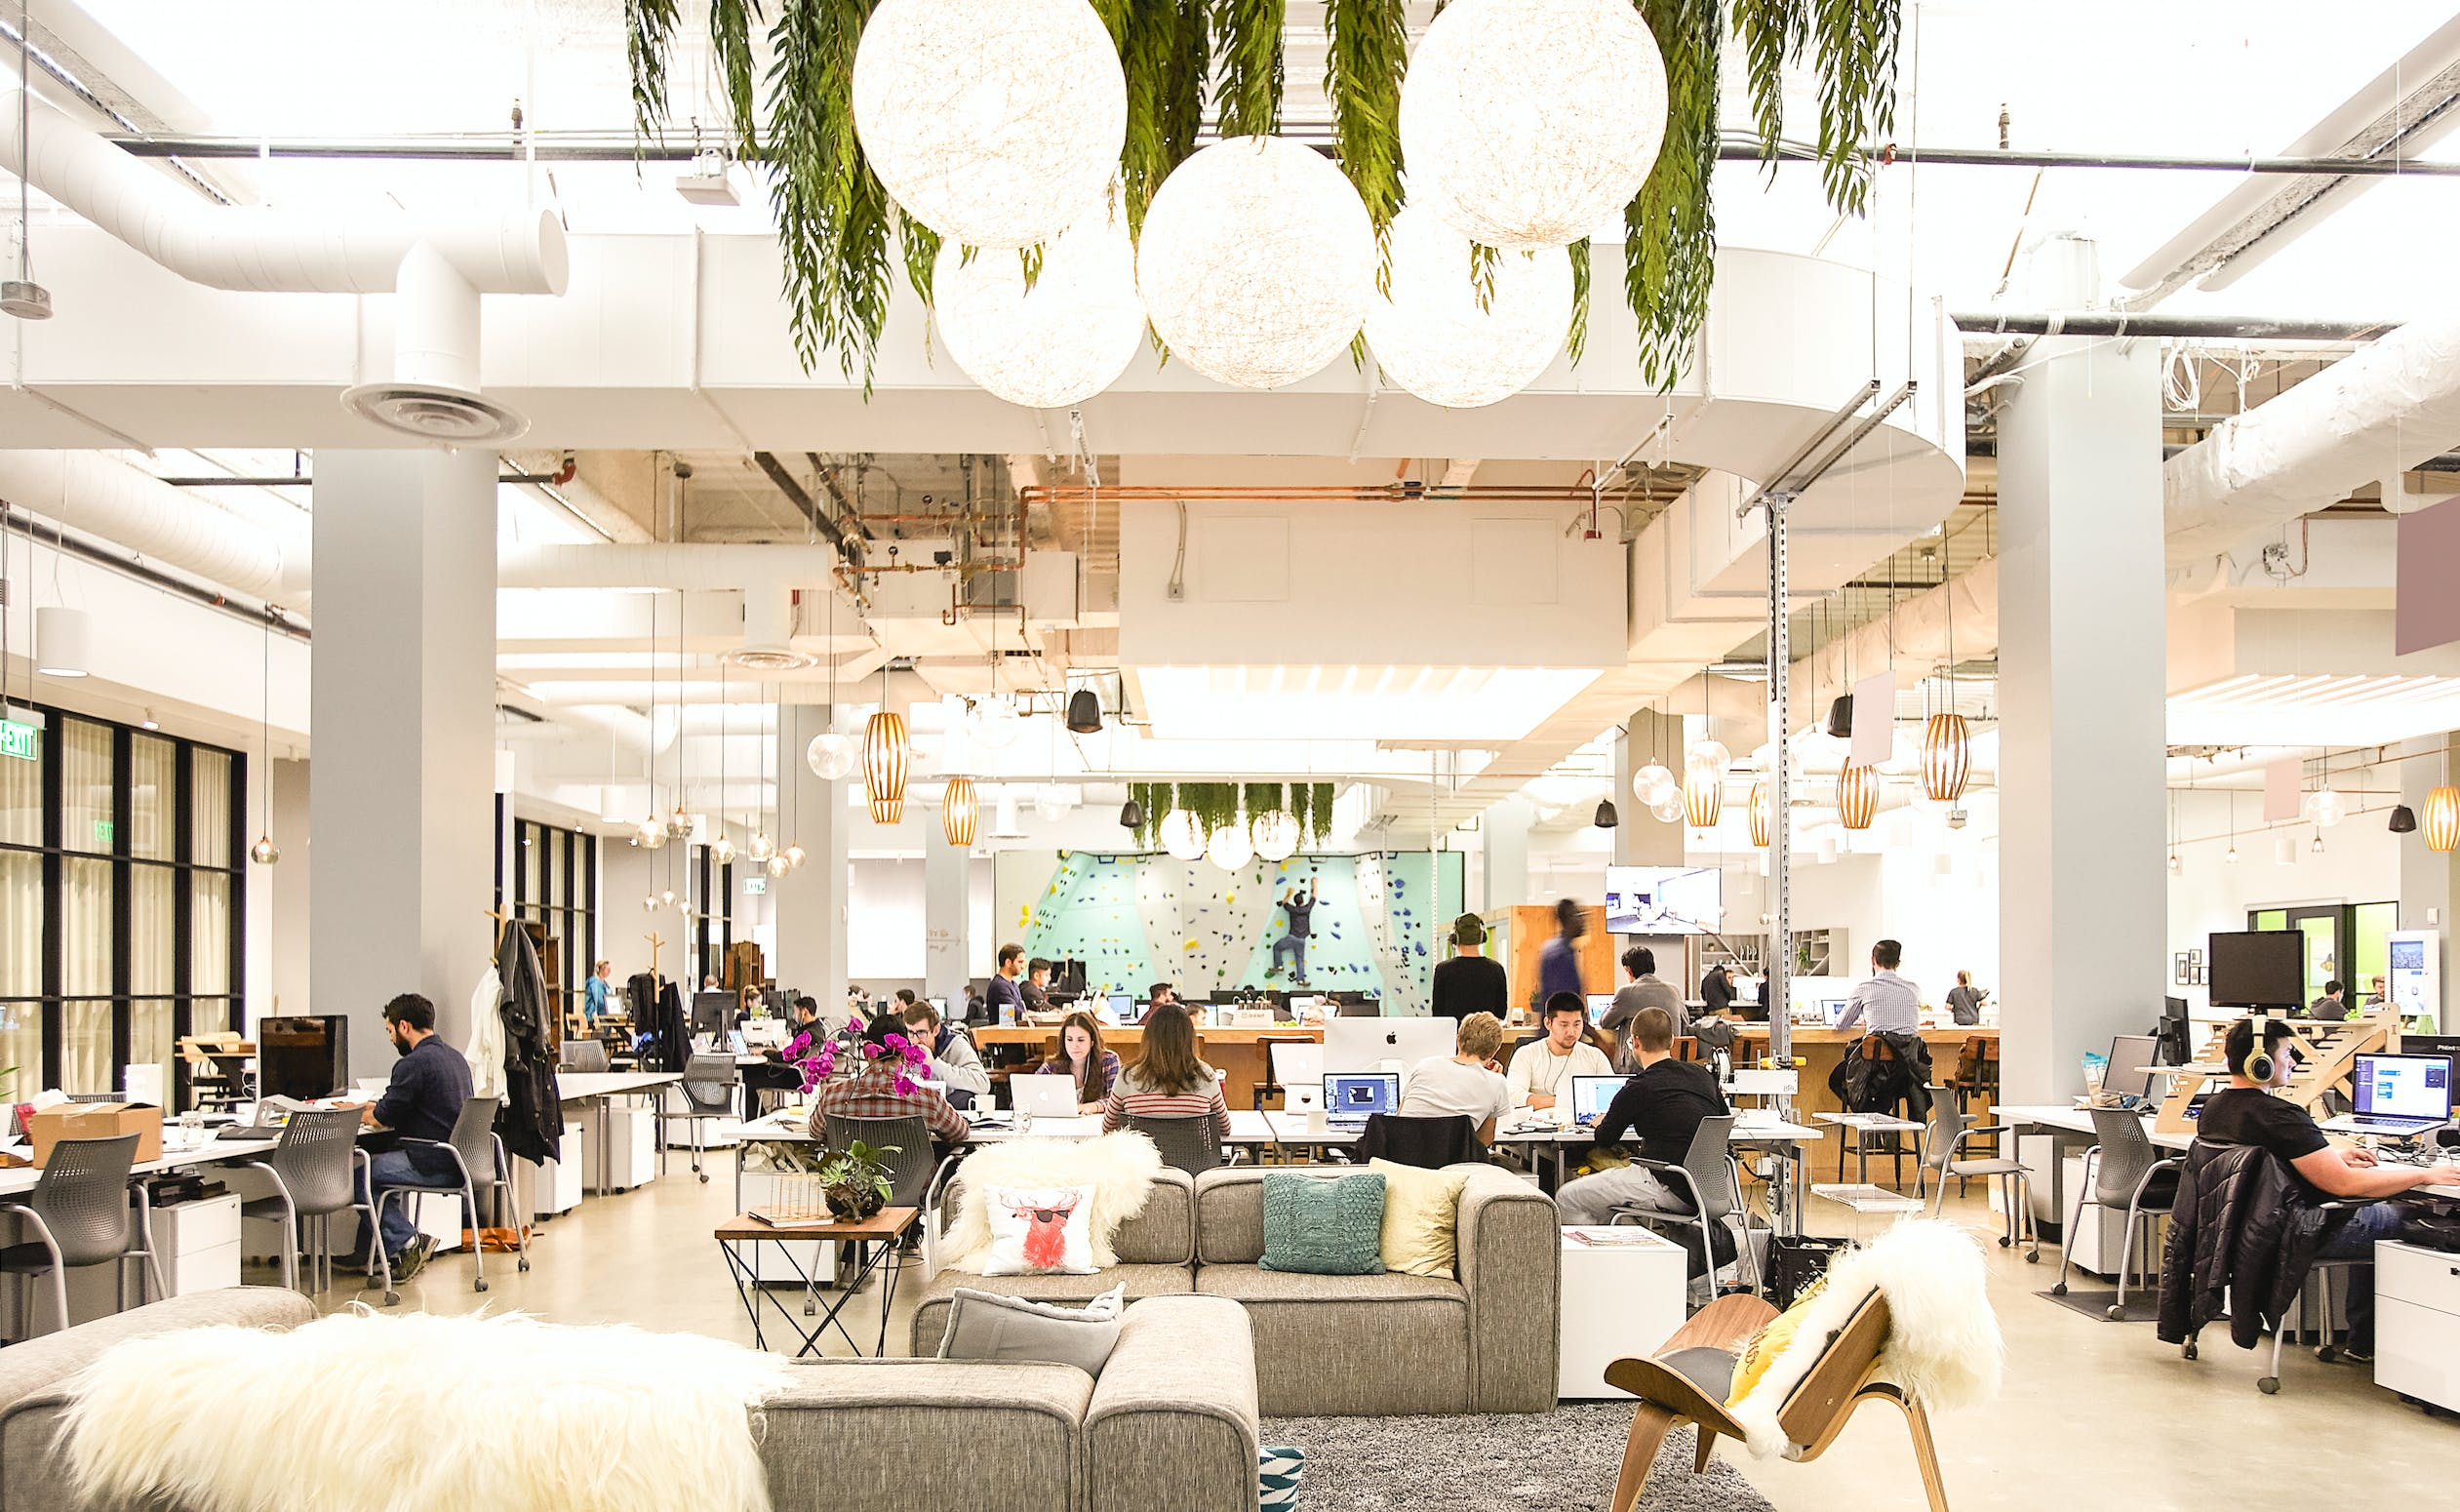 The 8 best co working spaces in san francisco purewow for Design companies in san francisco